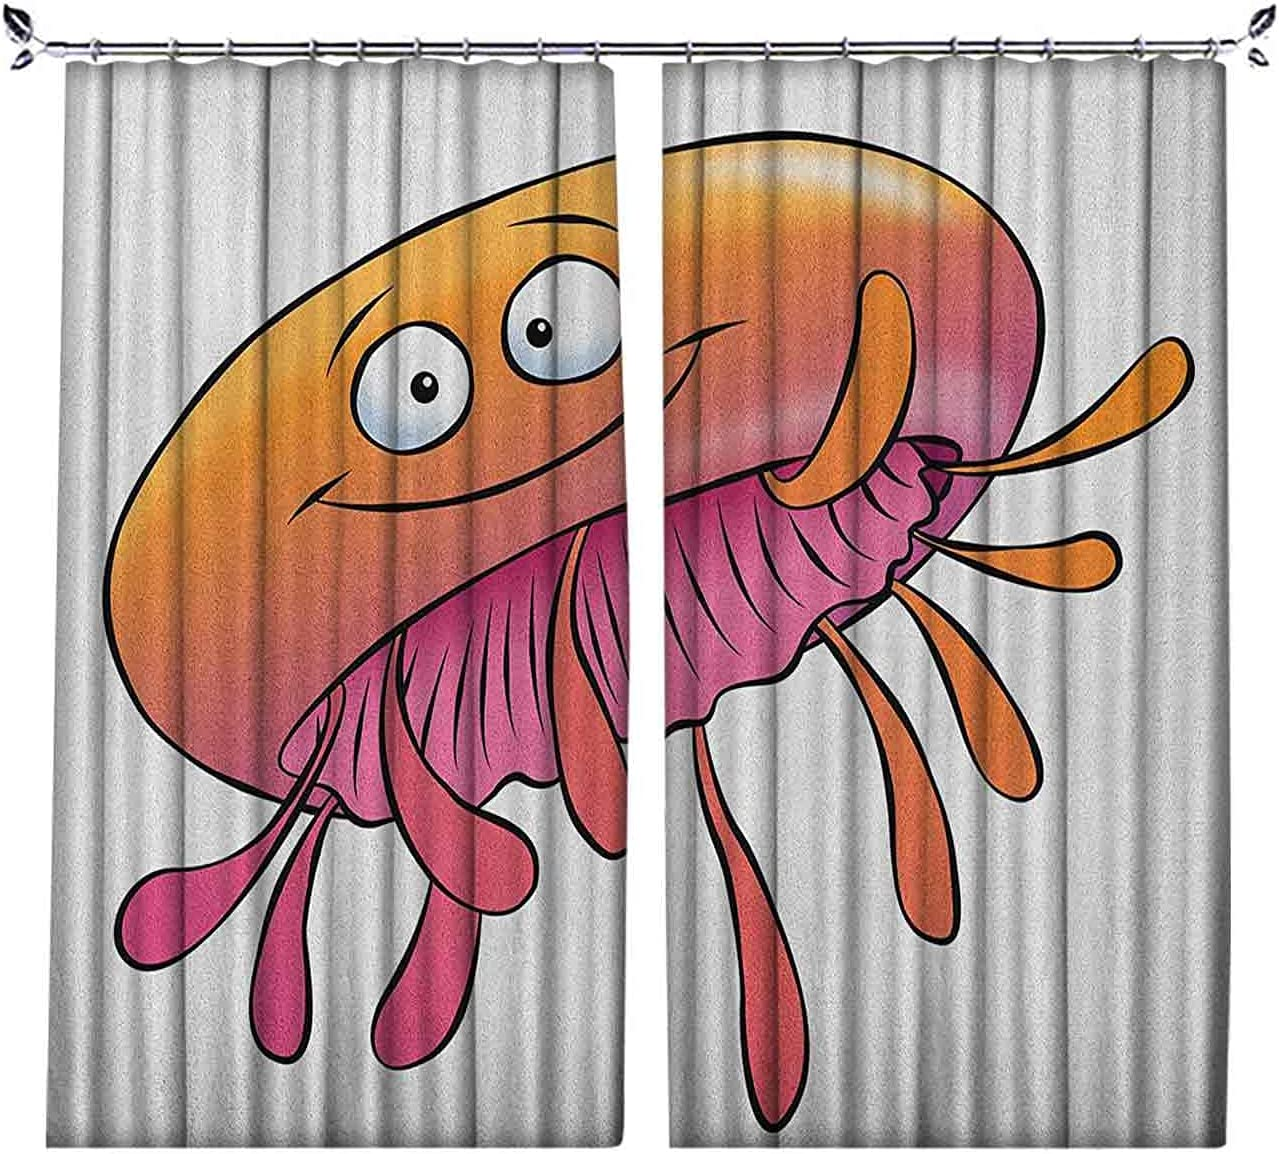 90% Outlet ☆ Free Shipping Blackout Orange and Pink Style Recommended Curtains Funny Jelly Cartoon